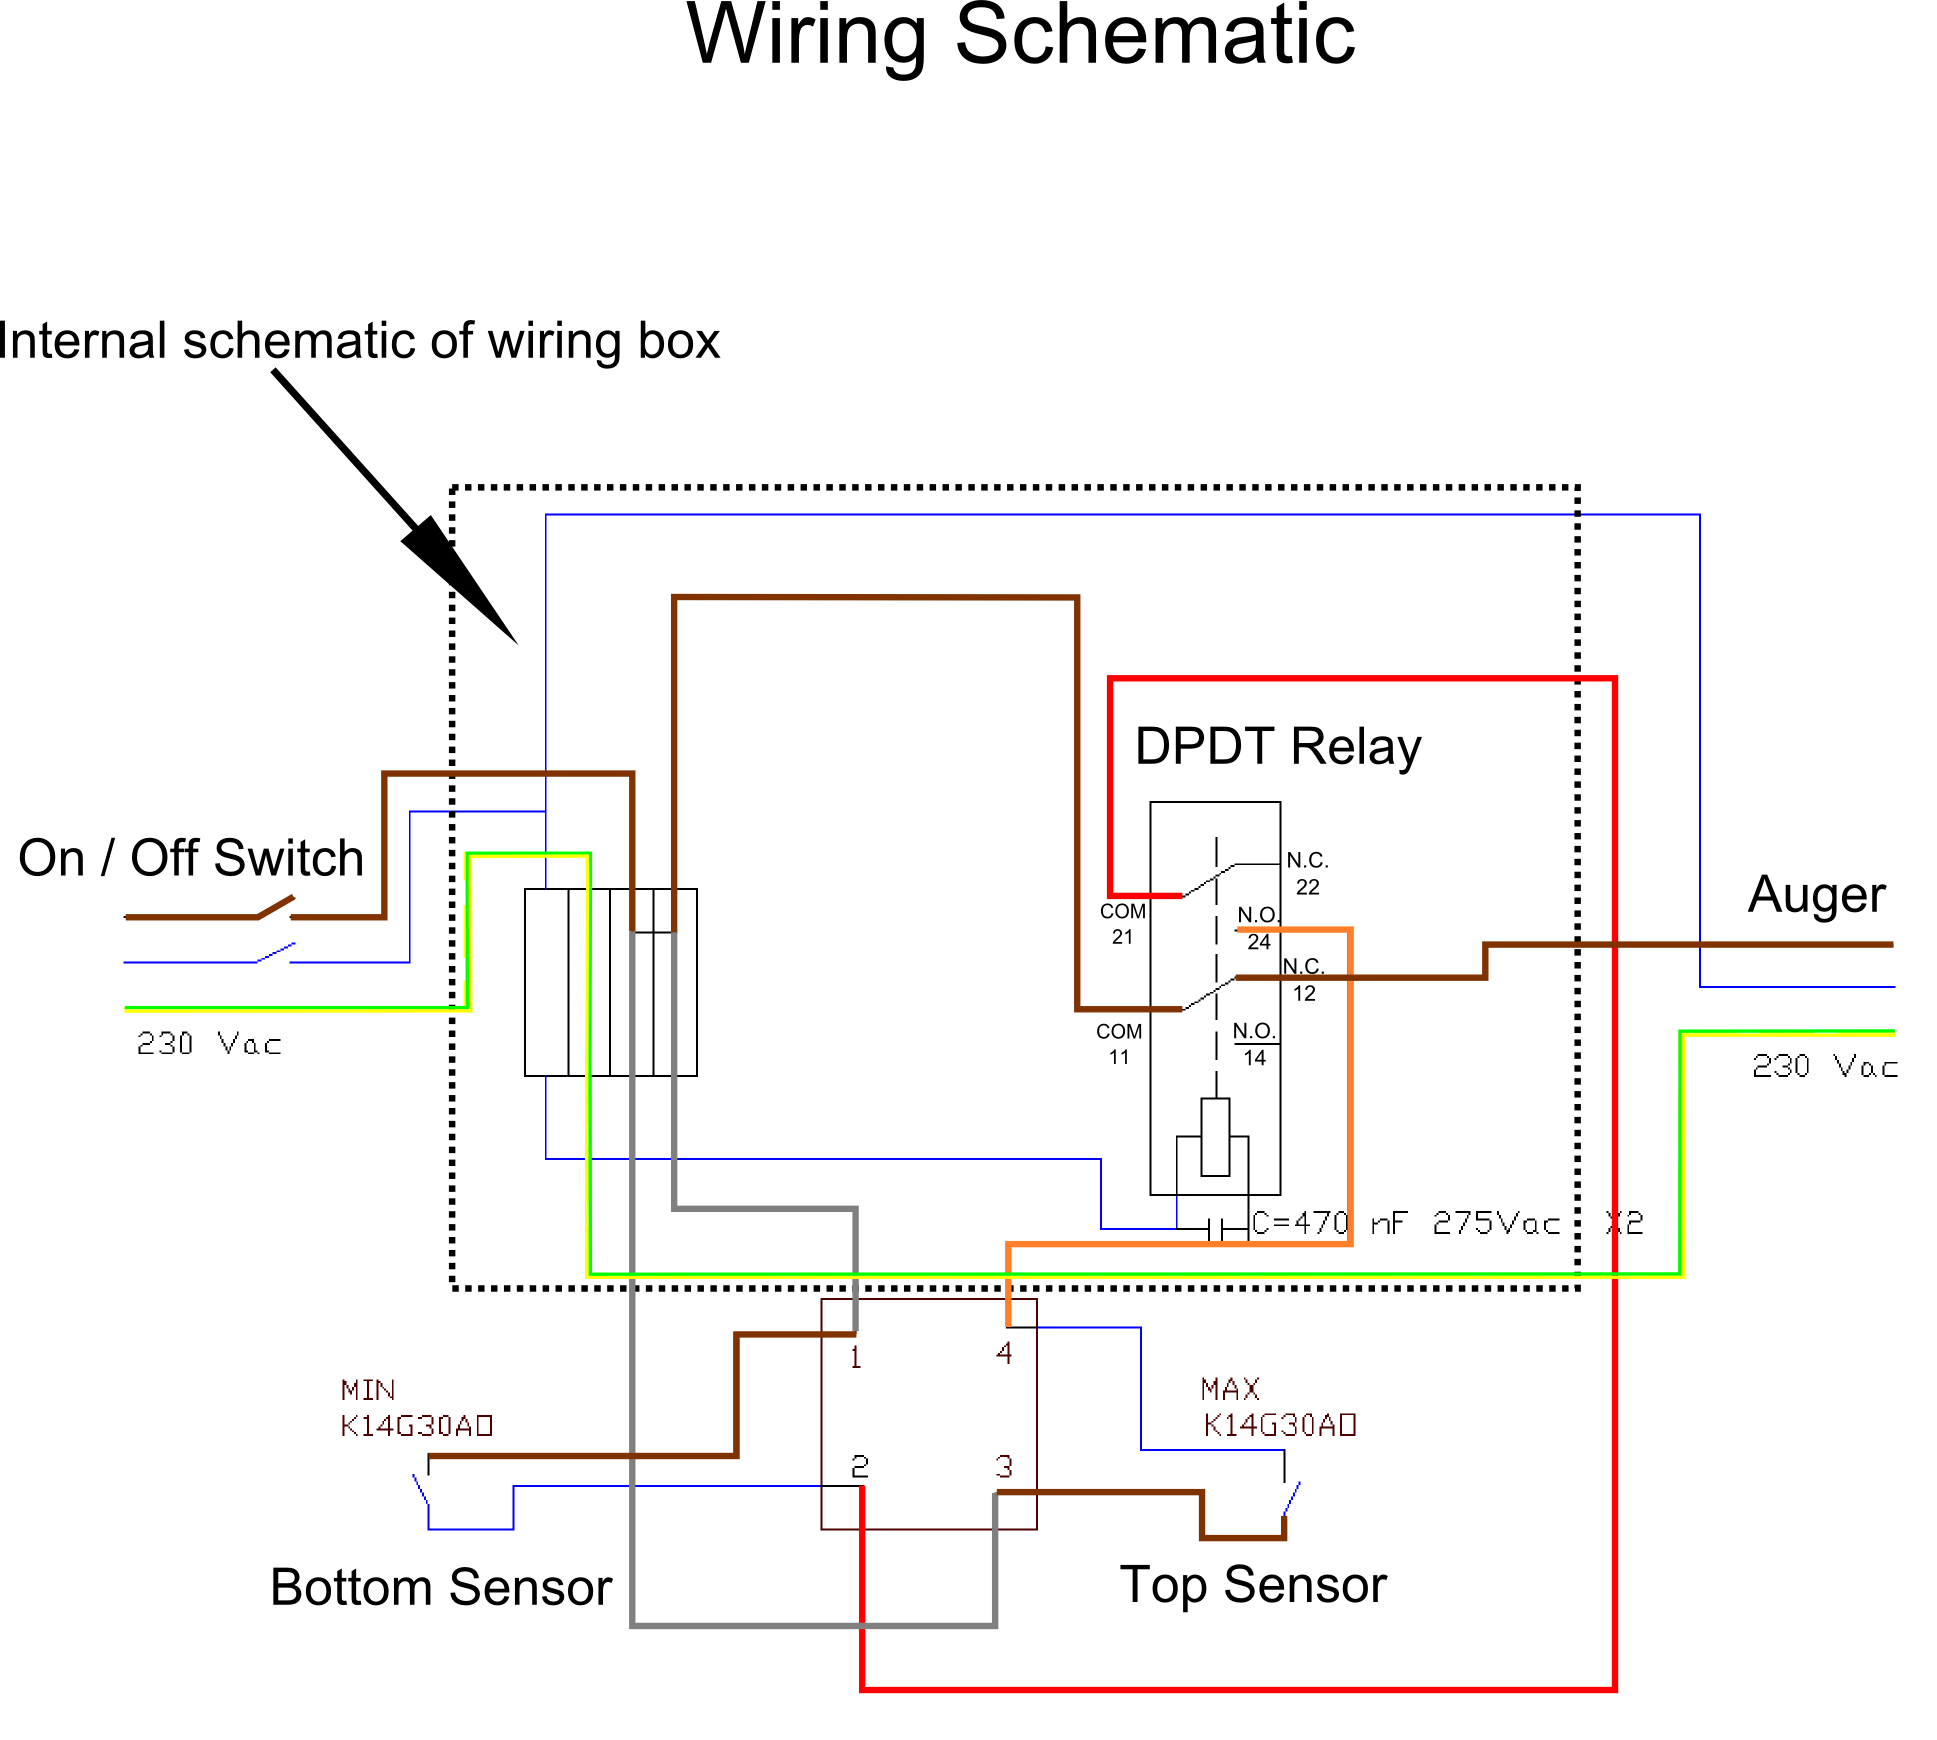 Level Transmitter Wiring Diagram Circuit Schematic A4ld File Pellet Sensors Heatweb Wiki Sensor